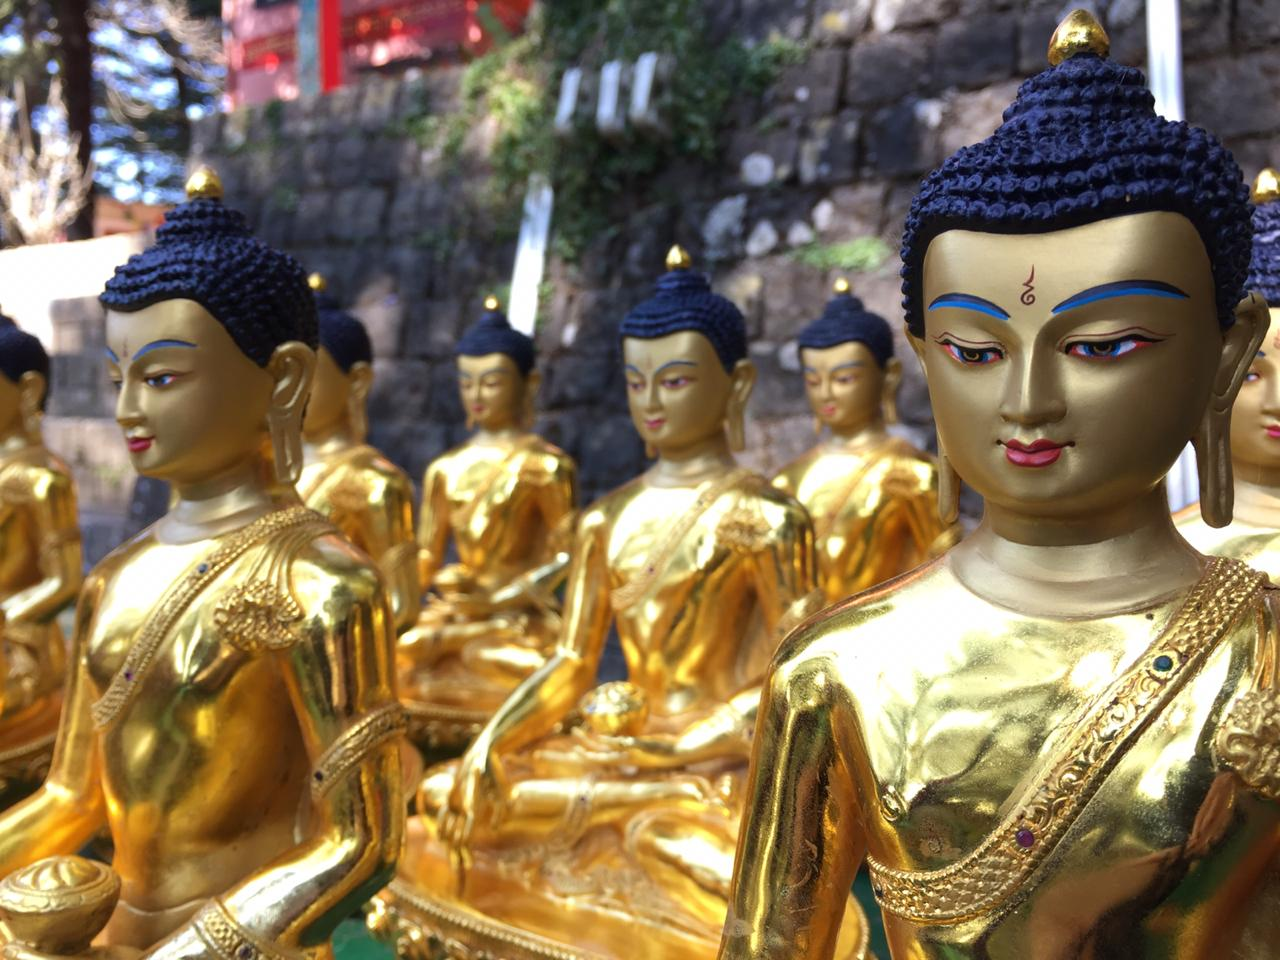 Update on 1,000 Statues of Buddha Created for His Holiness the Dalai Lama